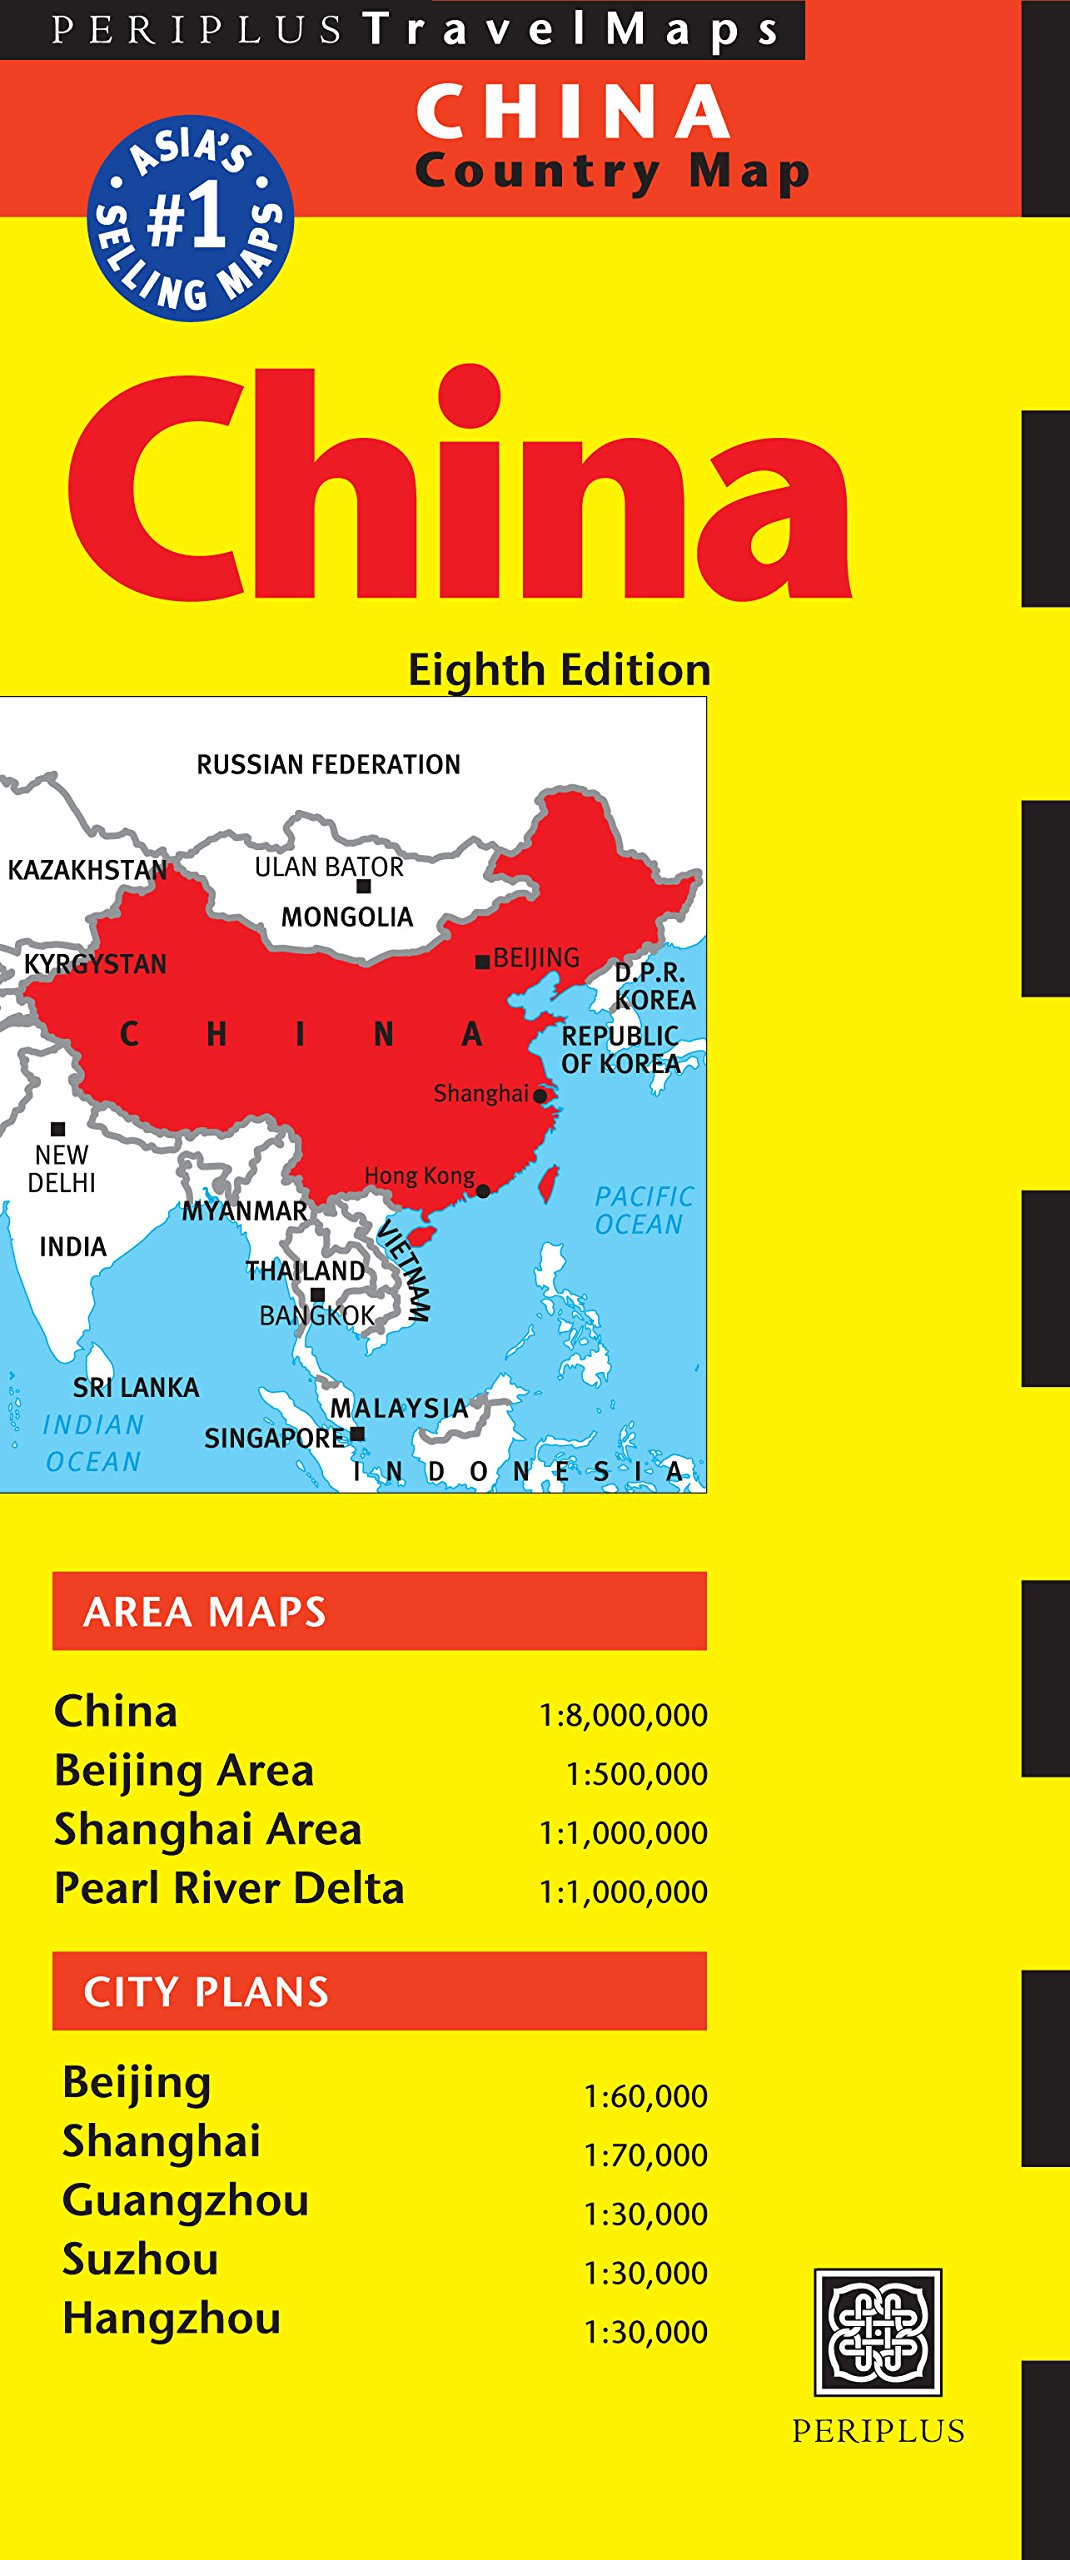 Map Of China And Surrounding Areas.China Travel Map Eighth Edition Periplus Travel Maps Periplus